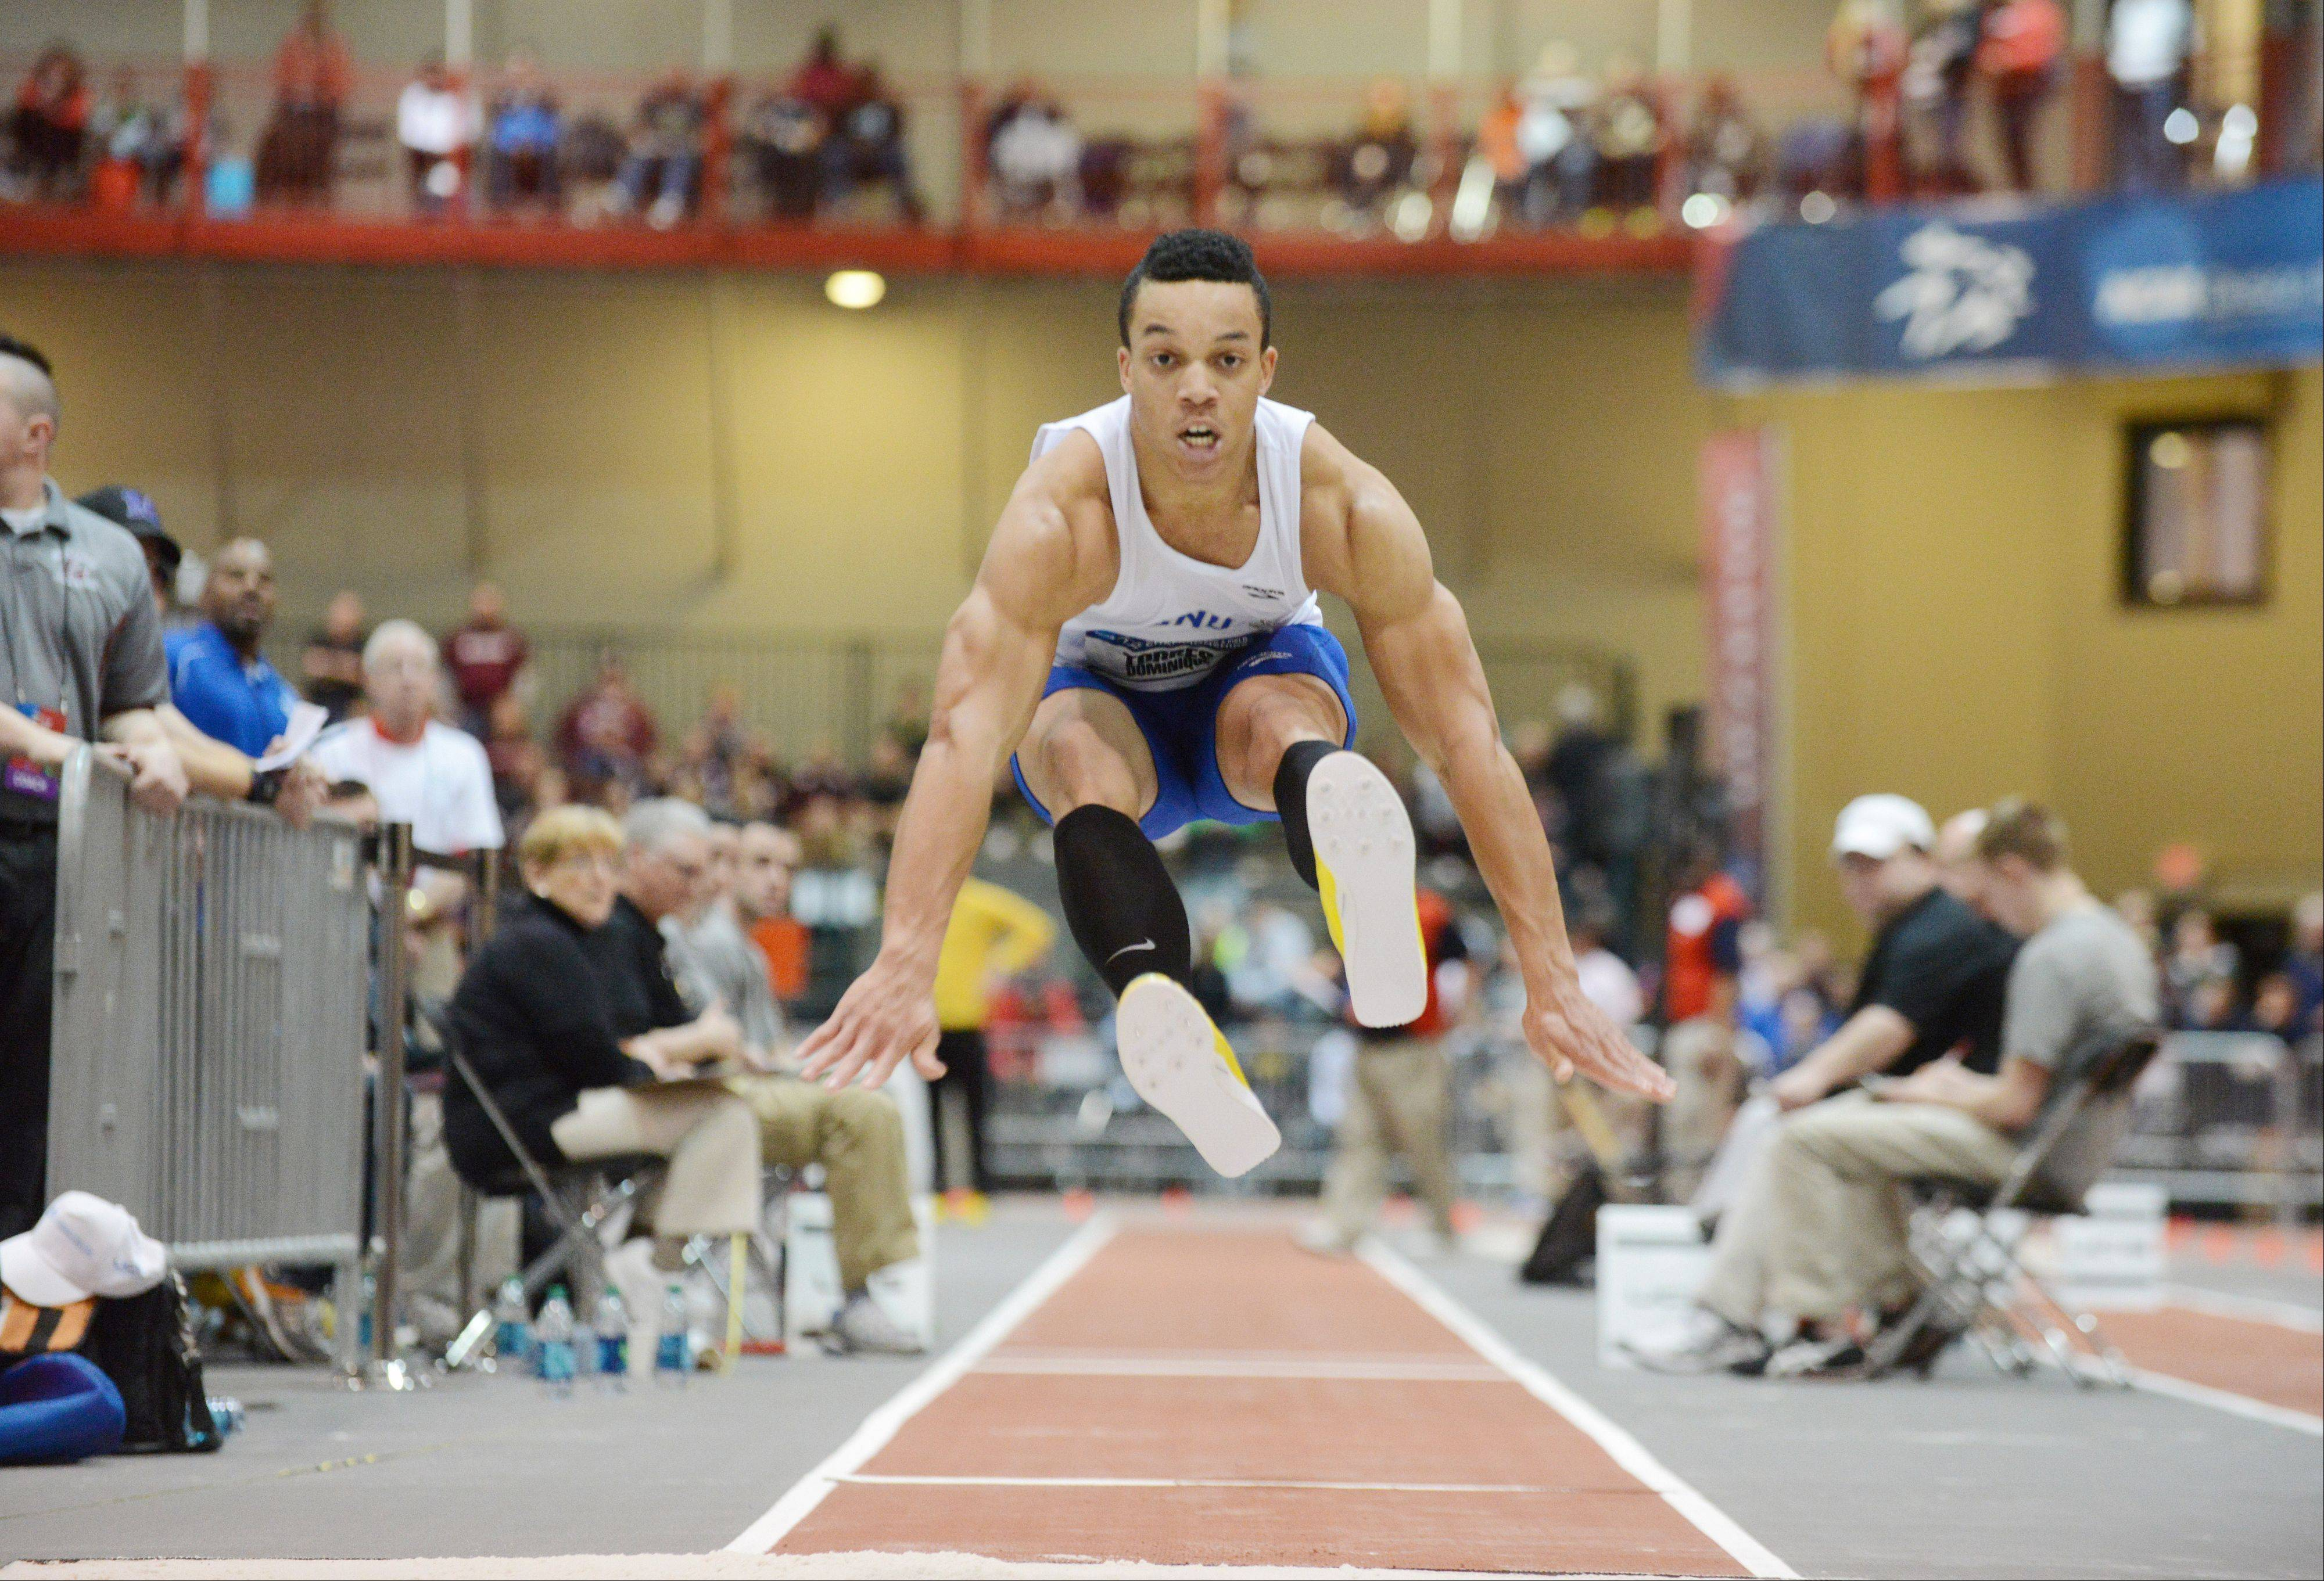 Dominique Torres of Christopher Newport University competes in the triple jump during the NCAA Division III Indoor Track and Field Championships March 9 at North Central College in Naperville.